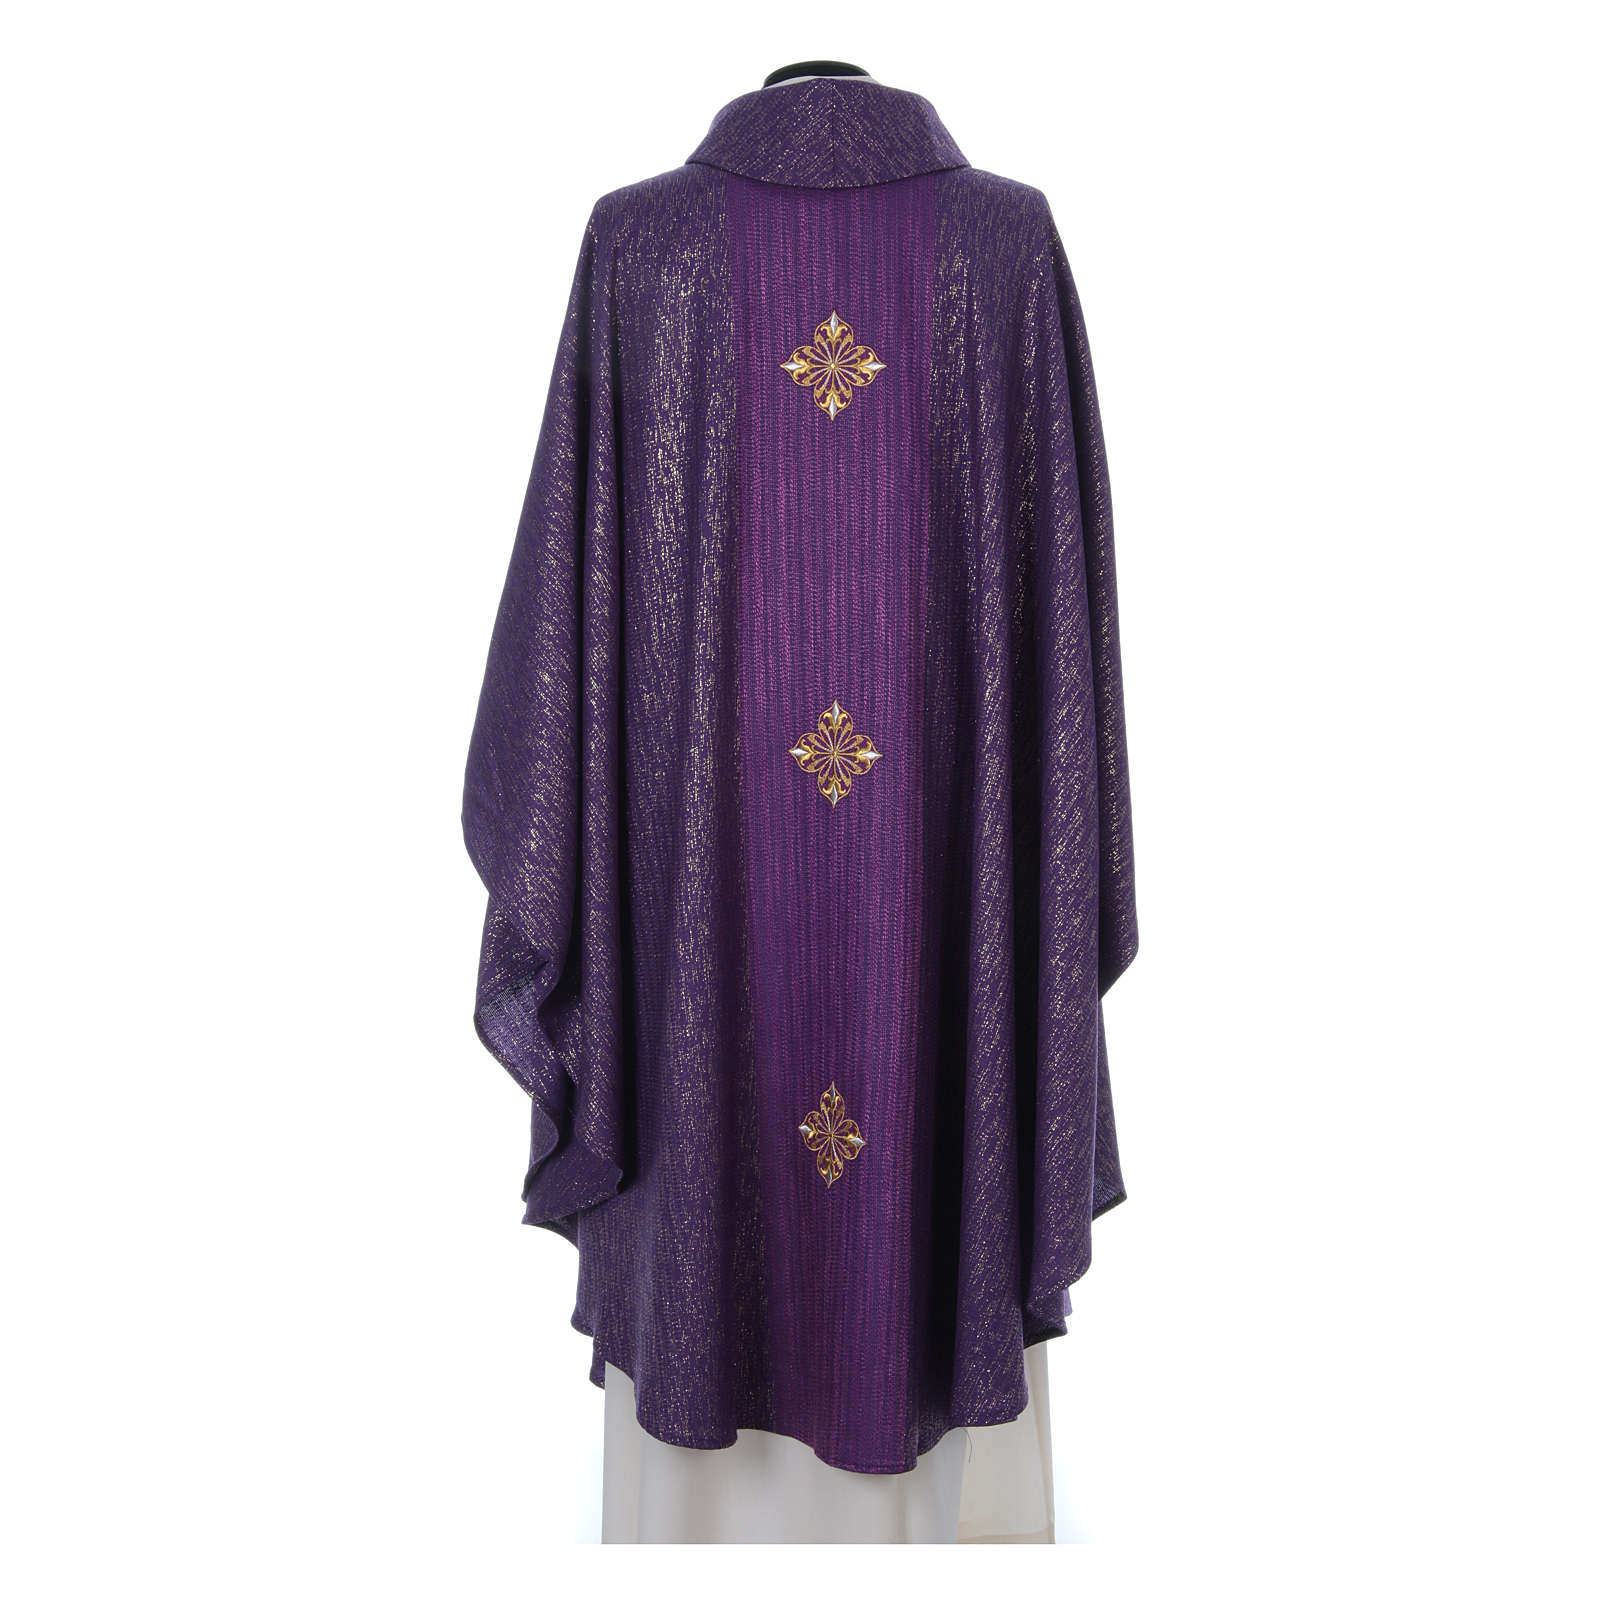 Chasuble 85% wool 15% lurex embroidered with three crosses 4